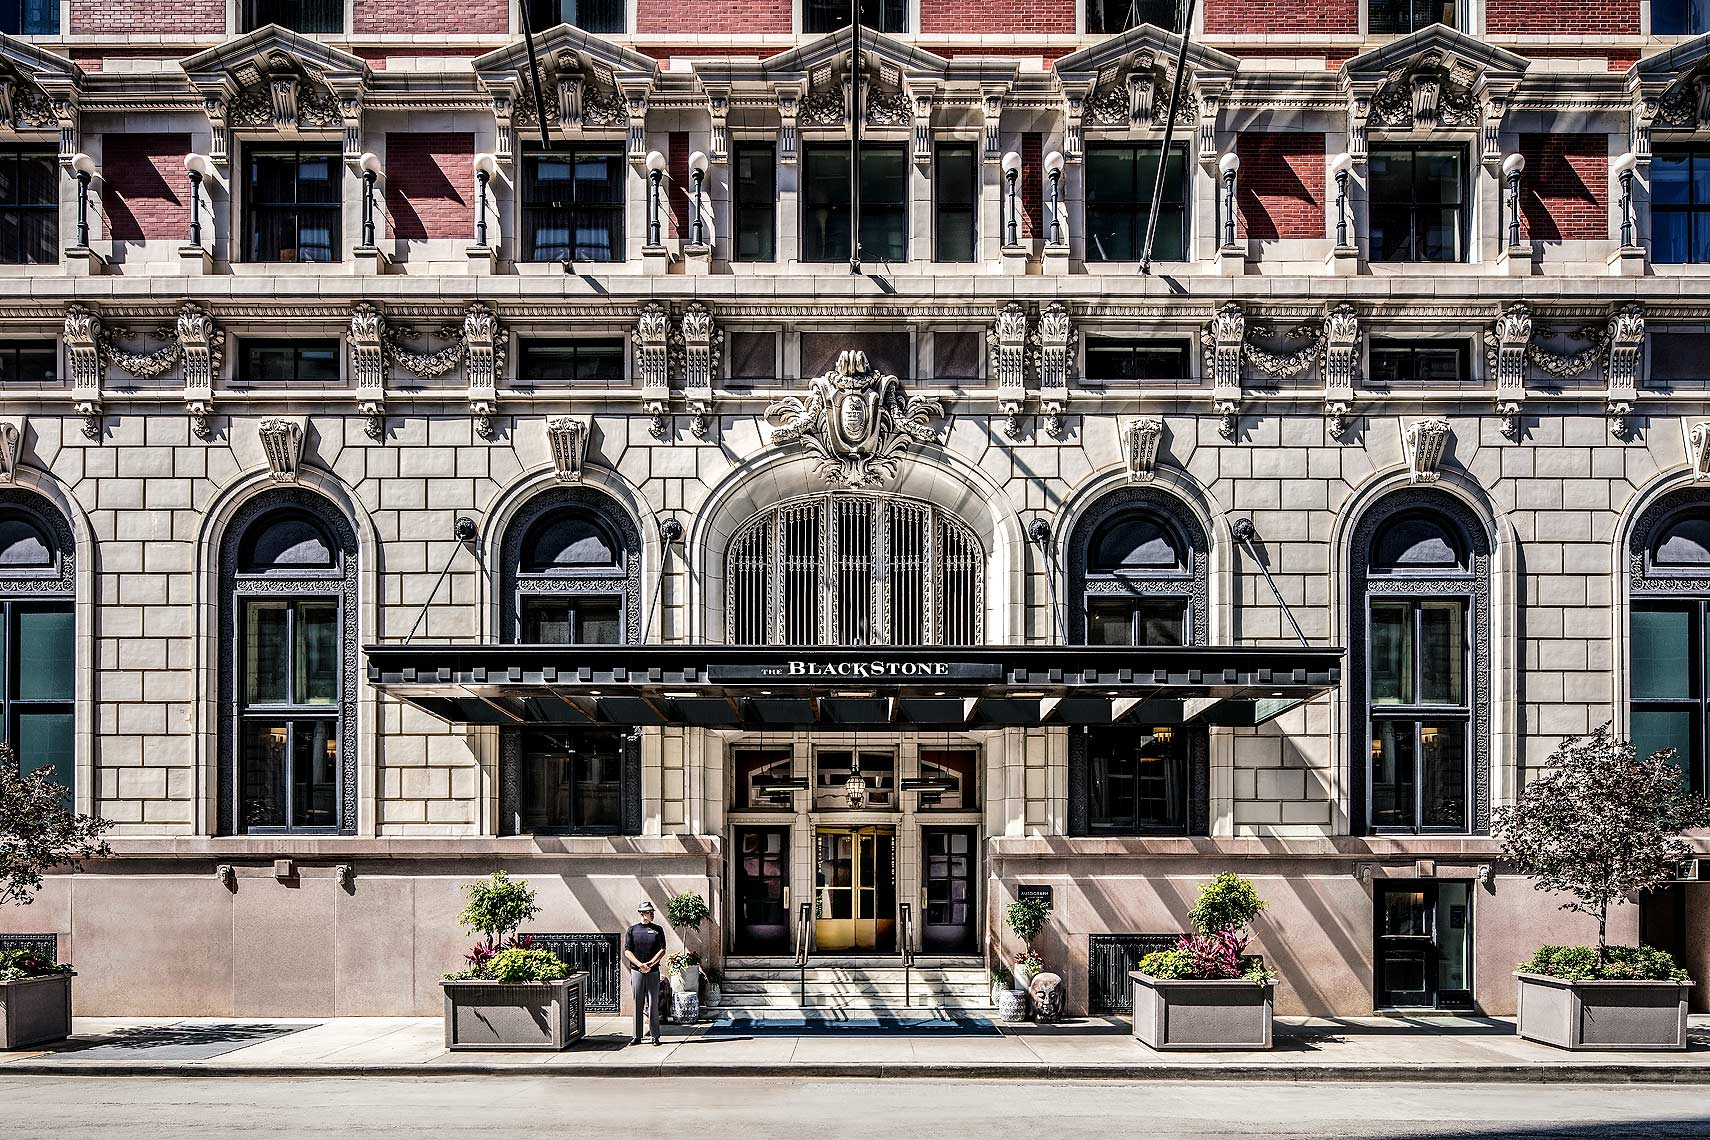 The Blackstone Hotel, Chicago - Exterior - Hotel Photography